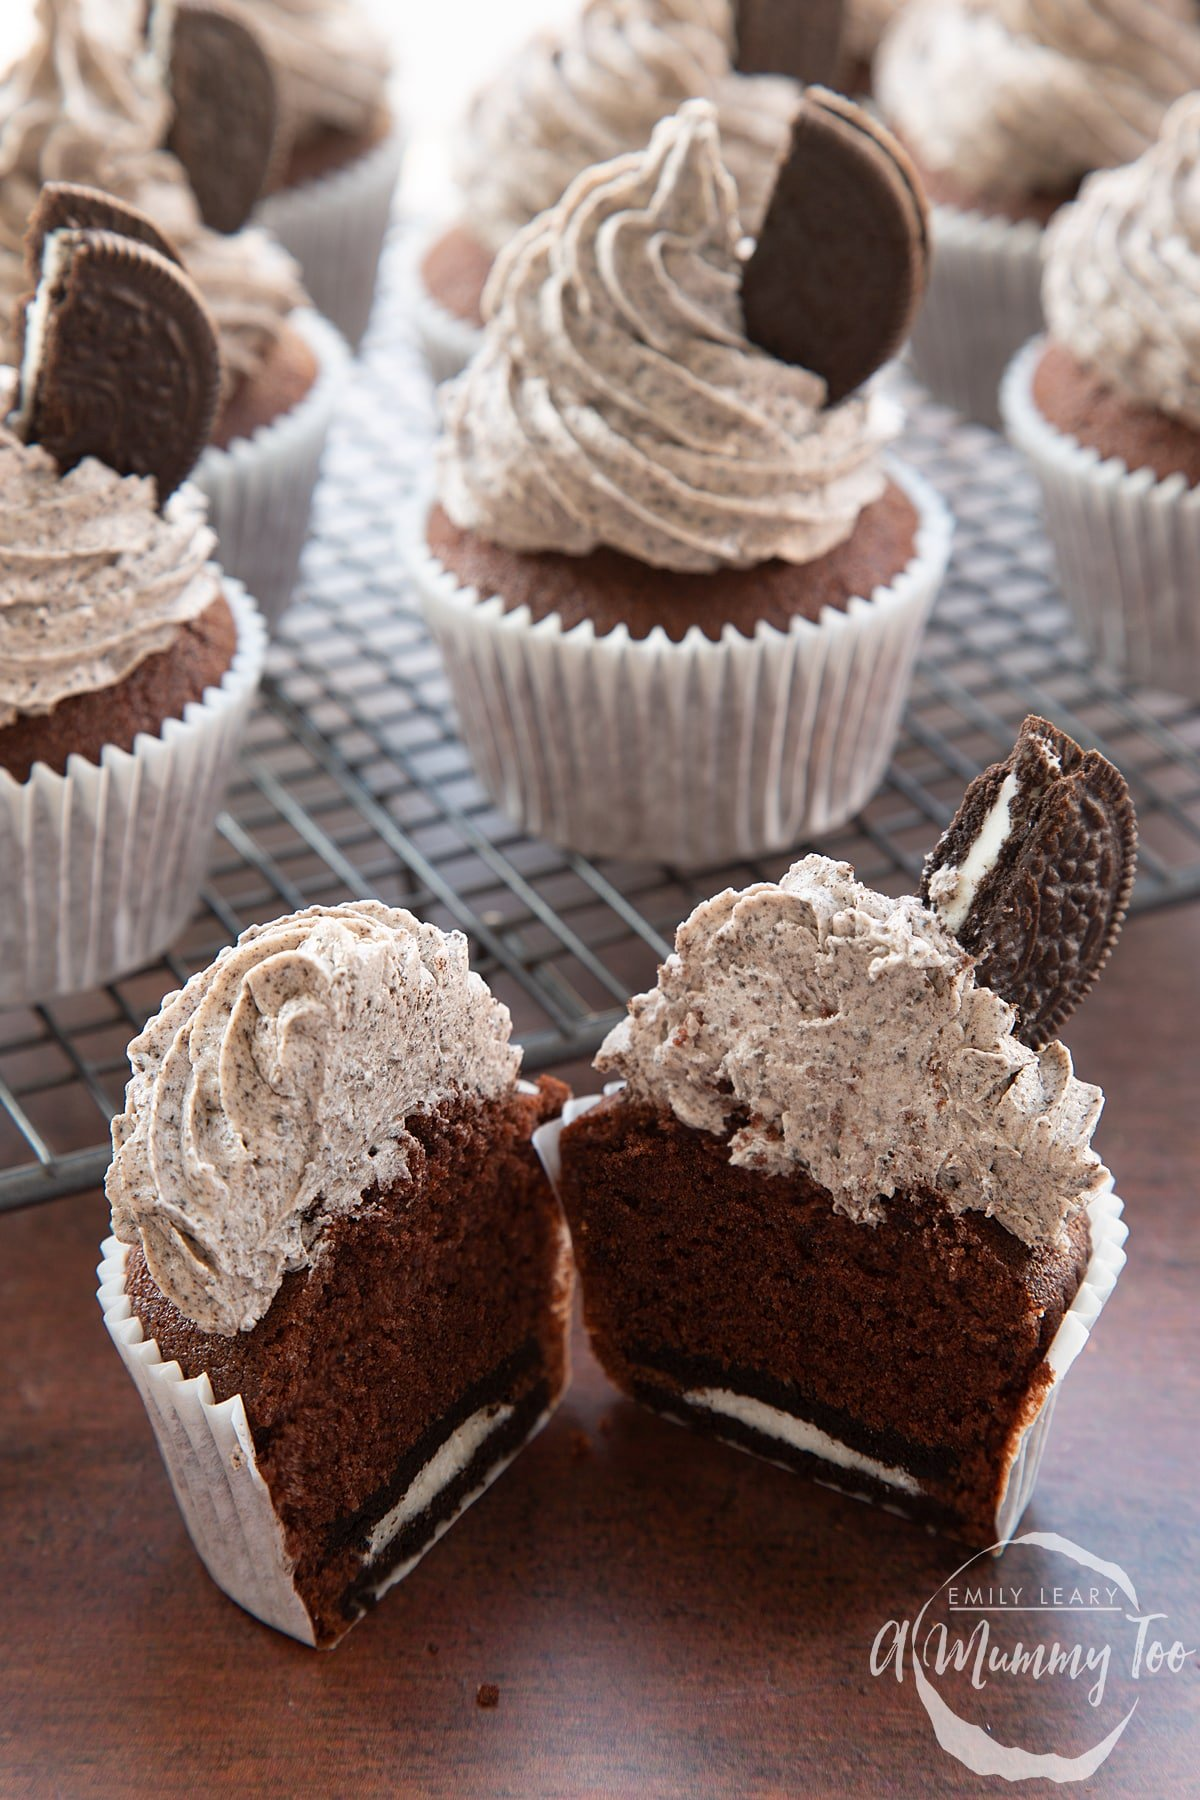 Front view shot of a chocolate cupcake with orea frosting cut in half